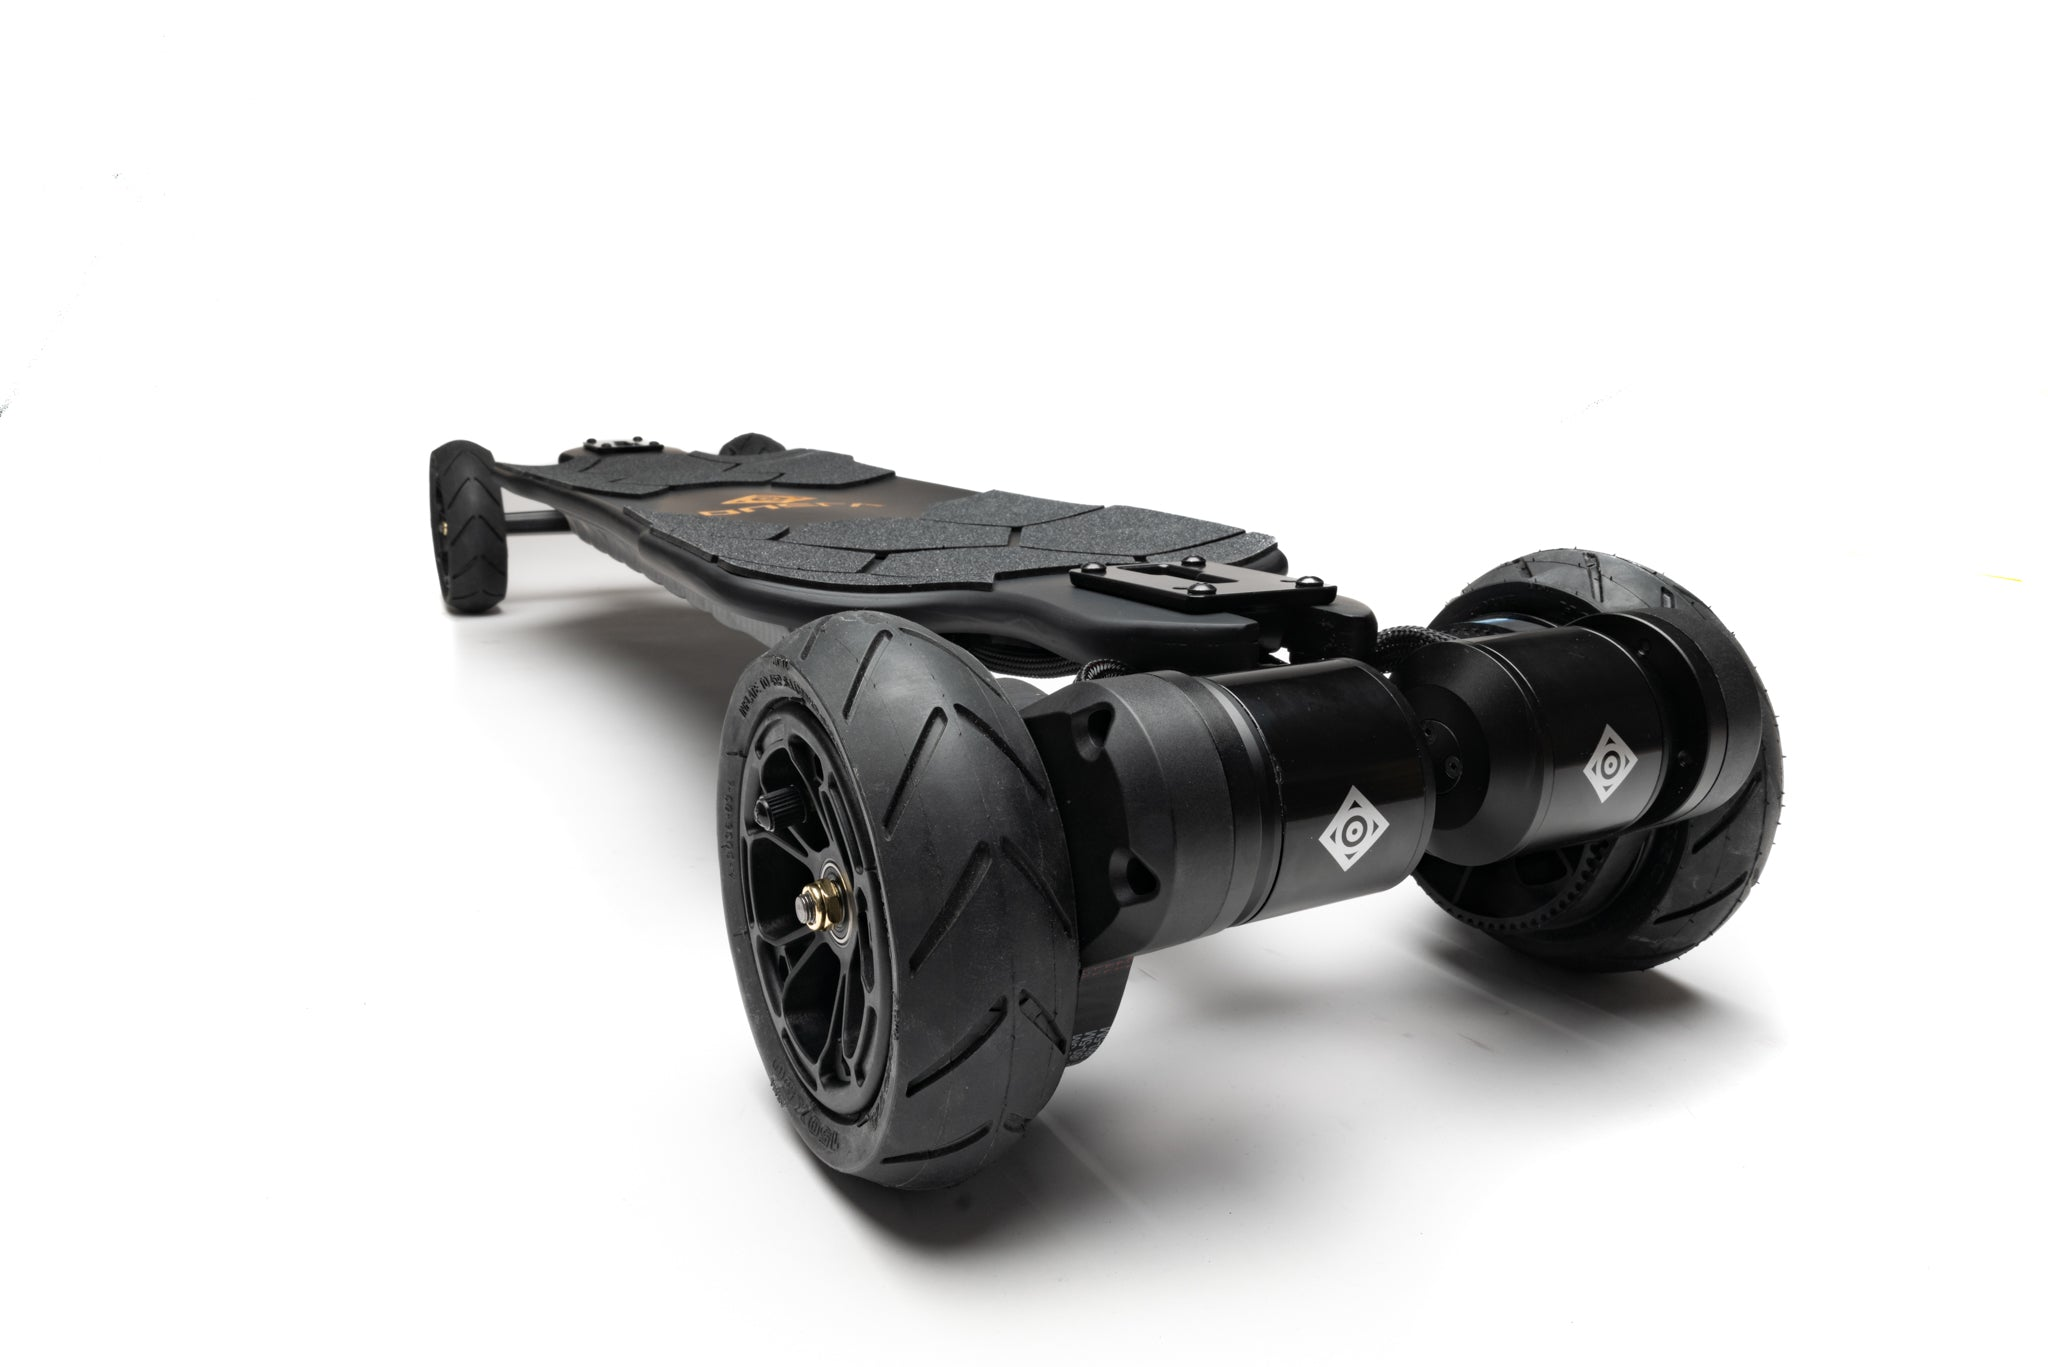 ONSRA BLACK Carve 2 - Belt Drive AT - Electric Skateboard 2021